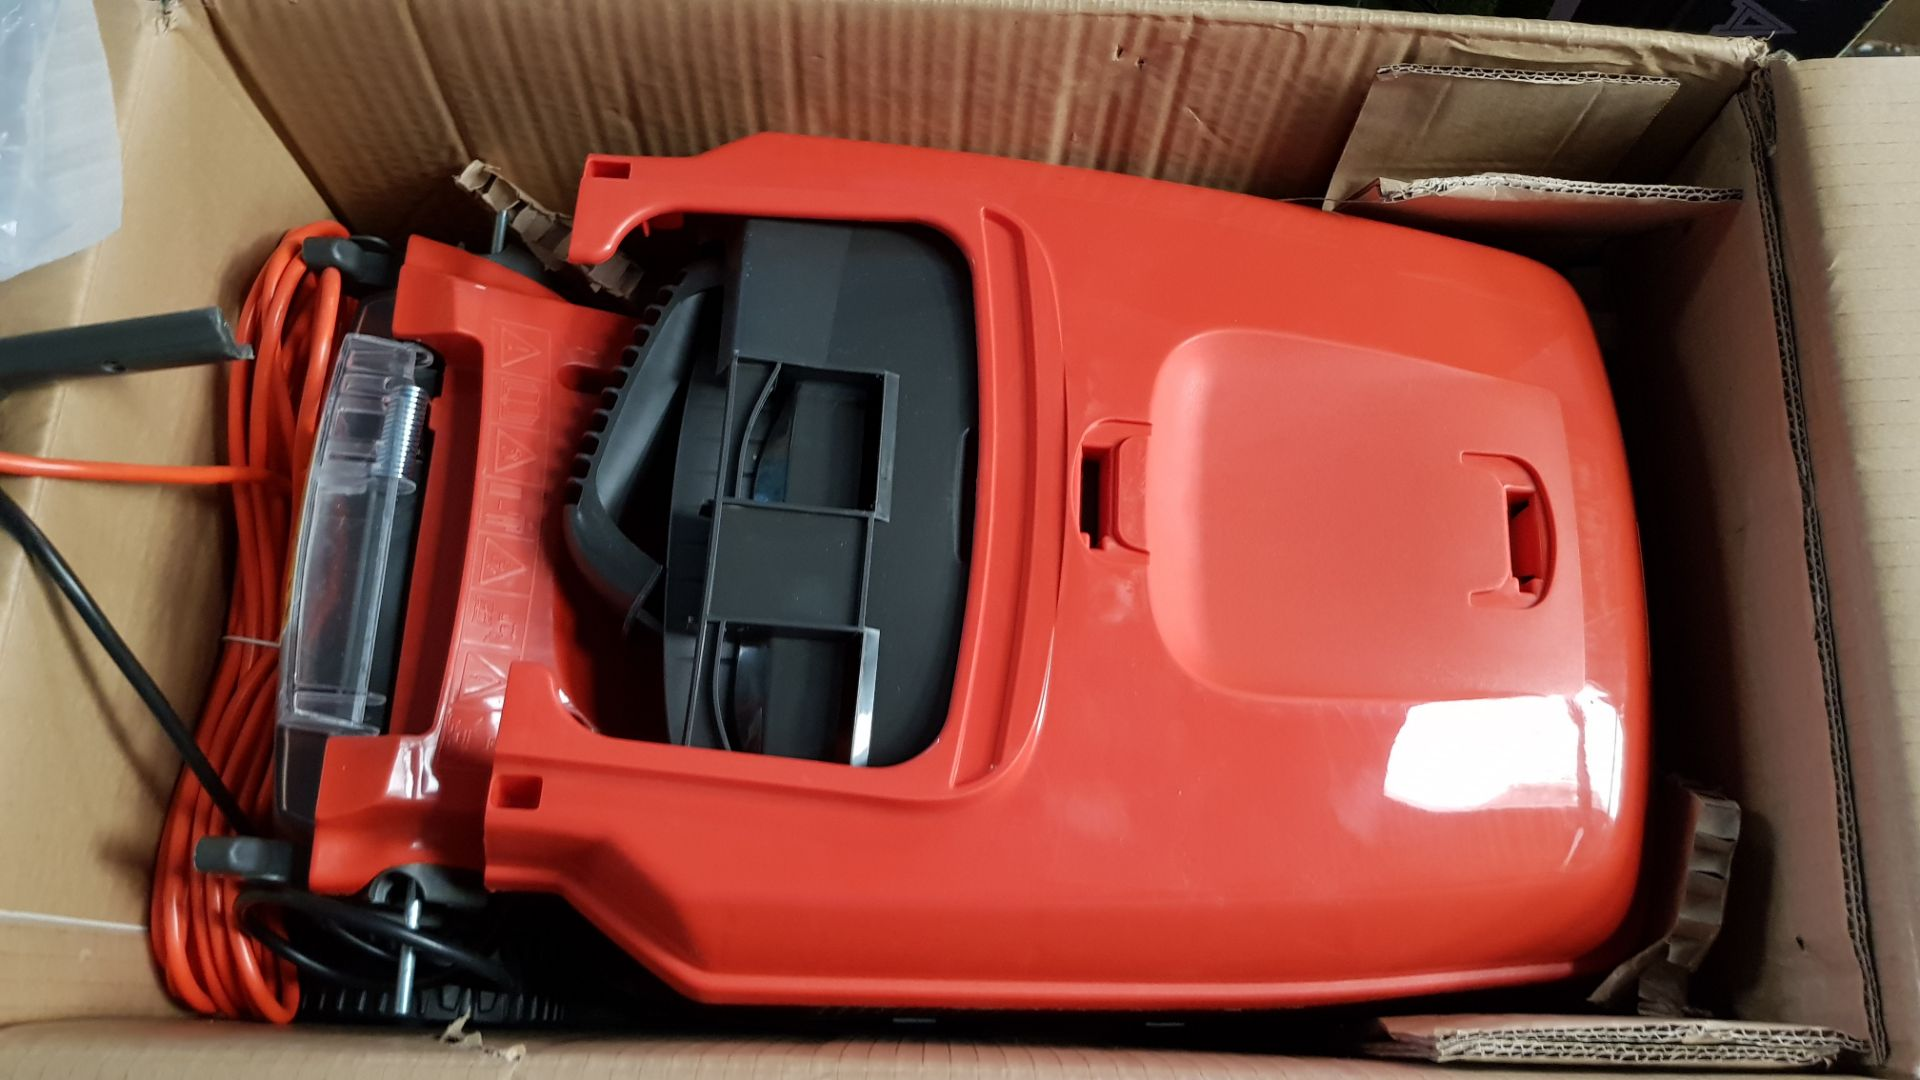 (P3) 1x Flymo Chevron 32V Lawn Mower. Contents Appear As New, Clean & Unused. - Image 5 of 5